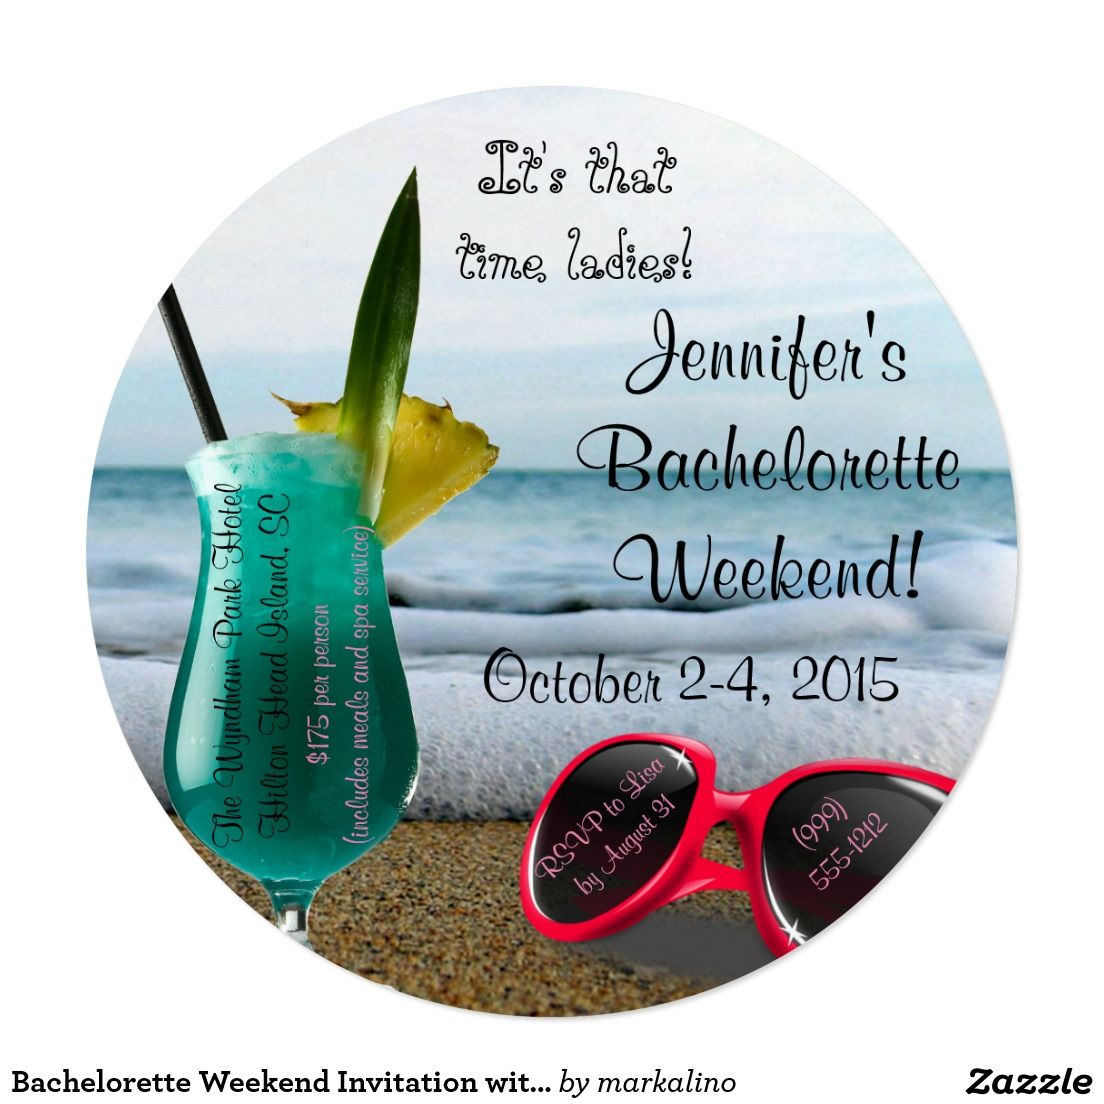 Bachelorette Weekend Invitation with Itinerary